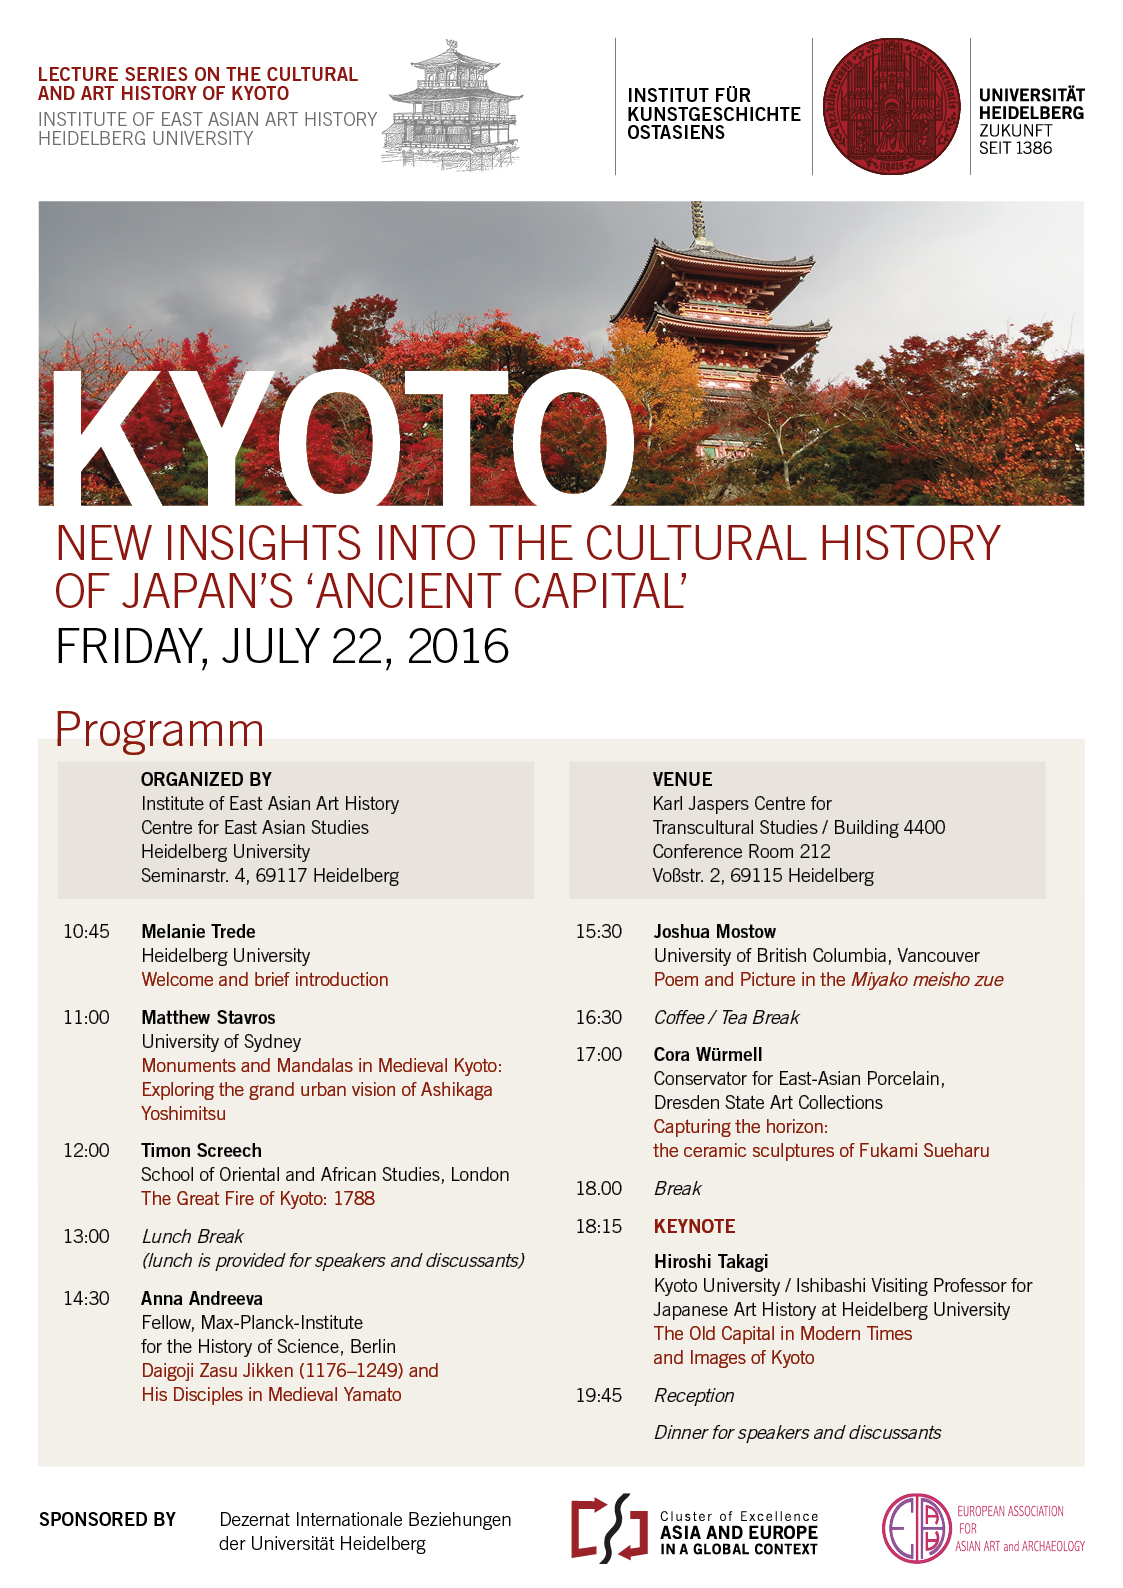 22 July, 2016 | Kyoto: New Insights into the Cultural History of Japan's 'ancient capital'